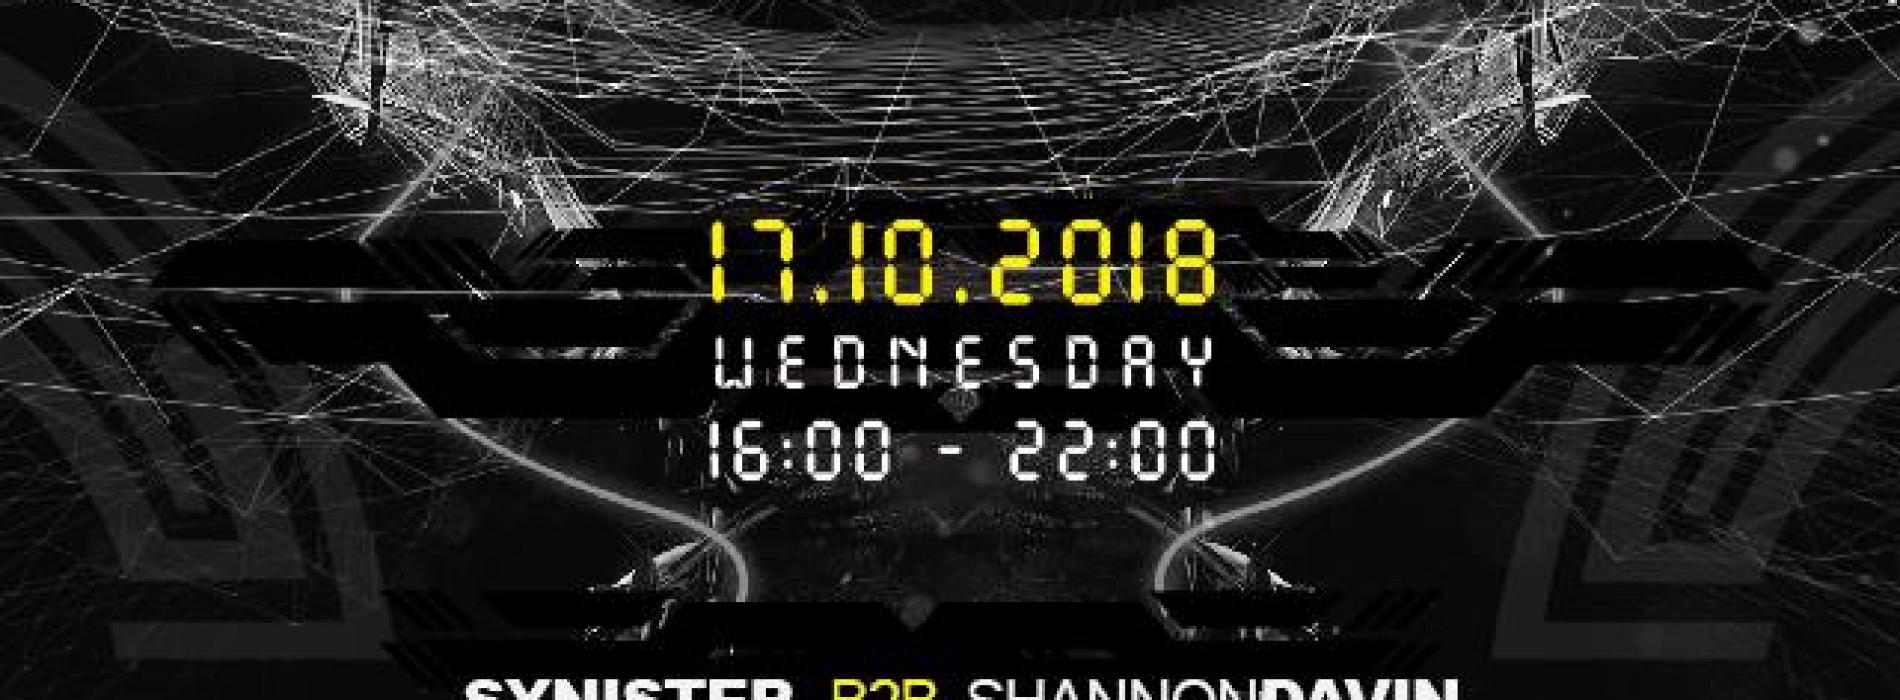 Shannon Davin To Play At Amsterdam Dance Event This Month!